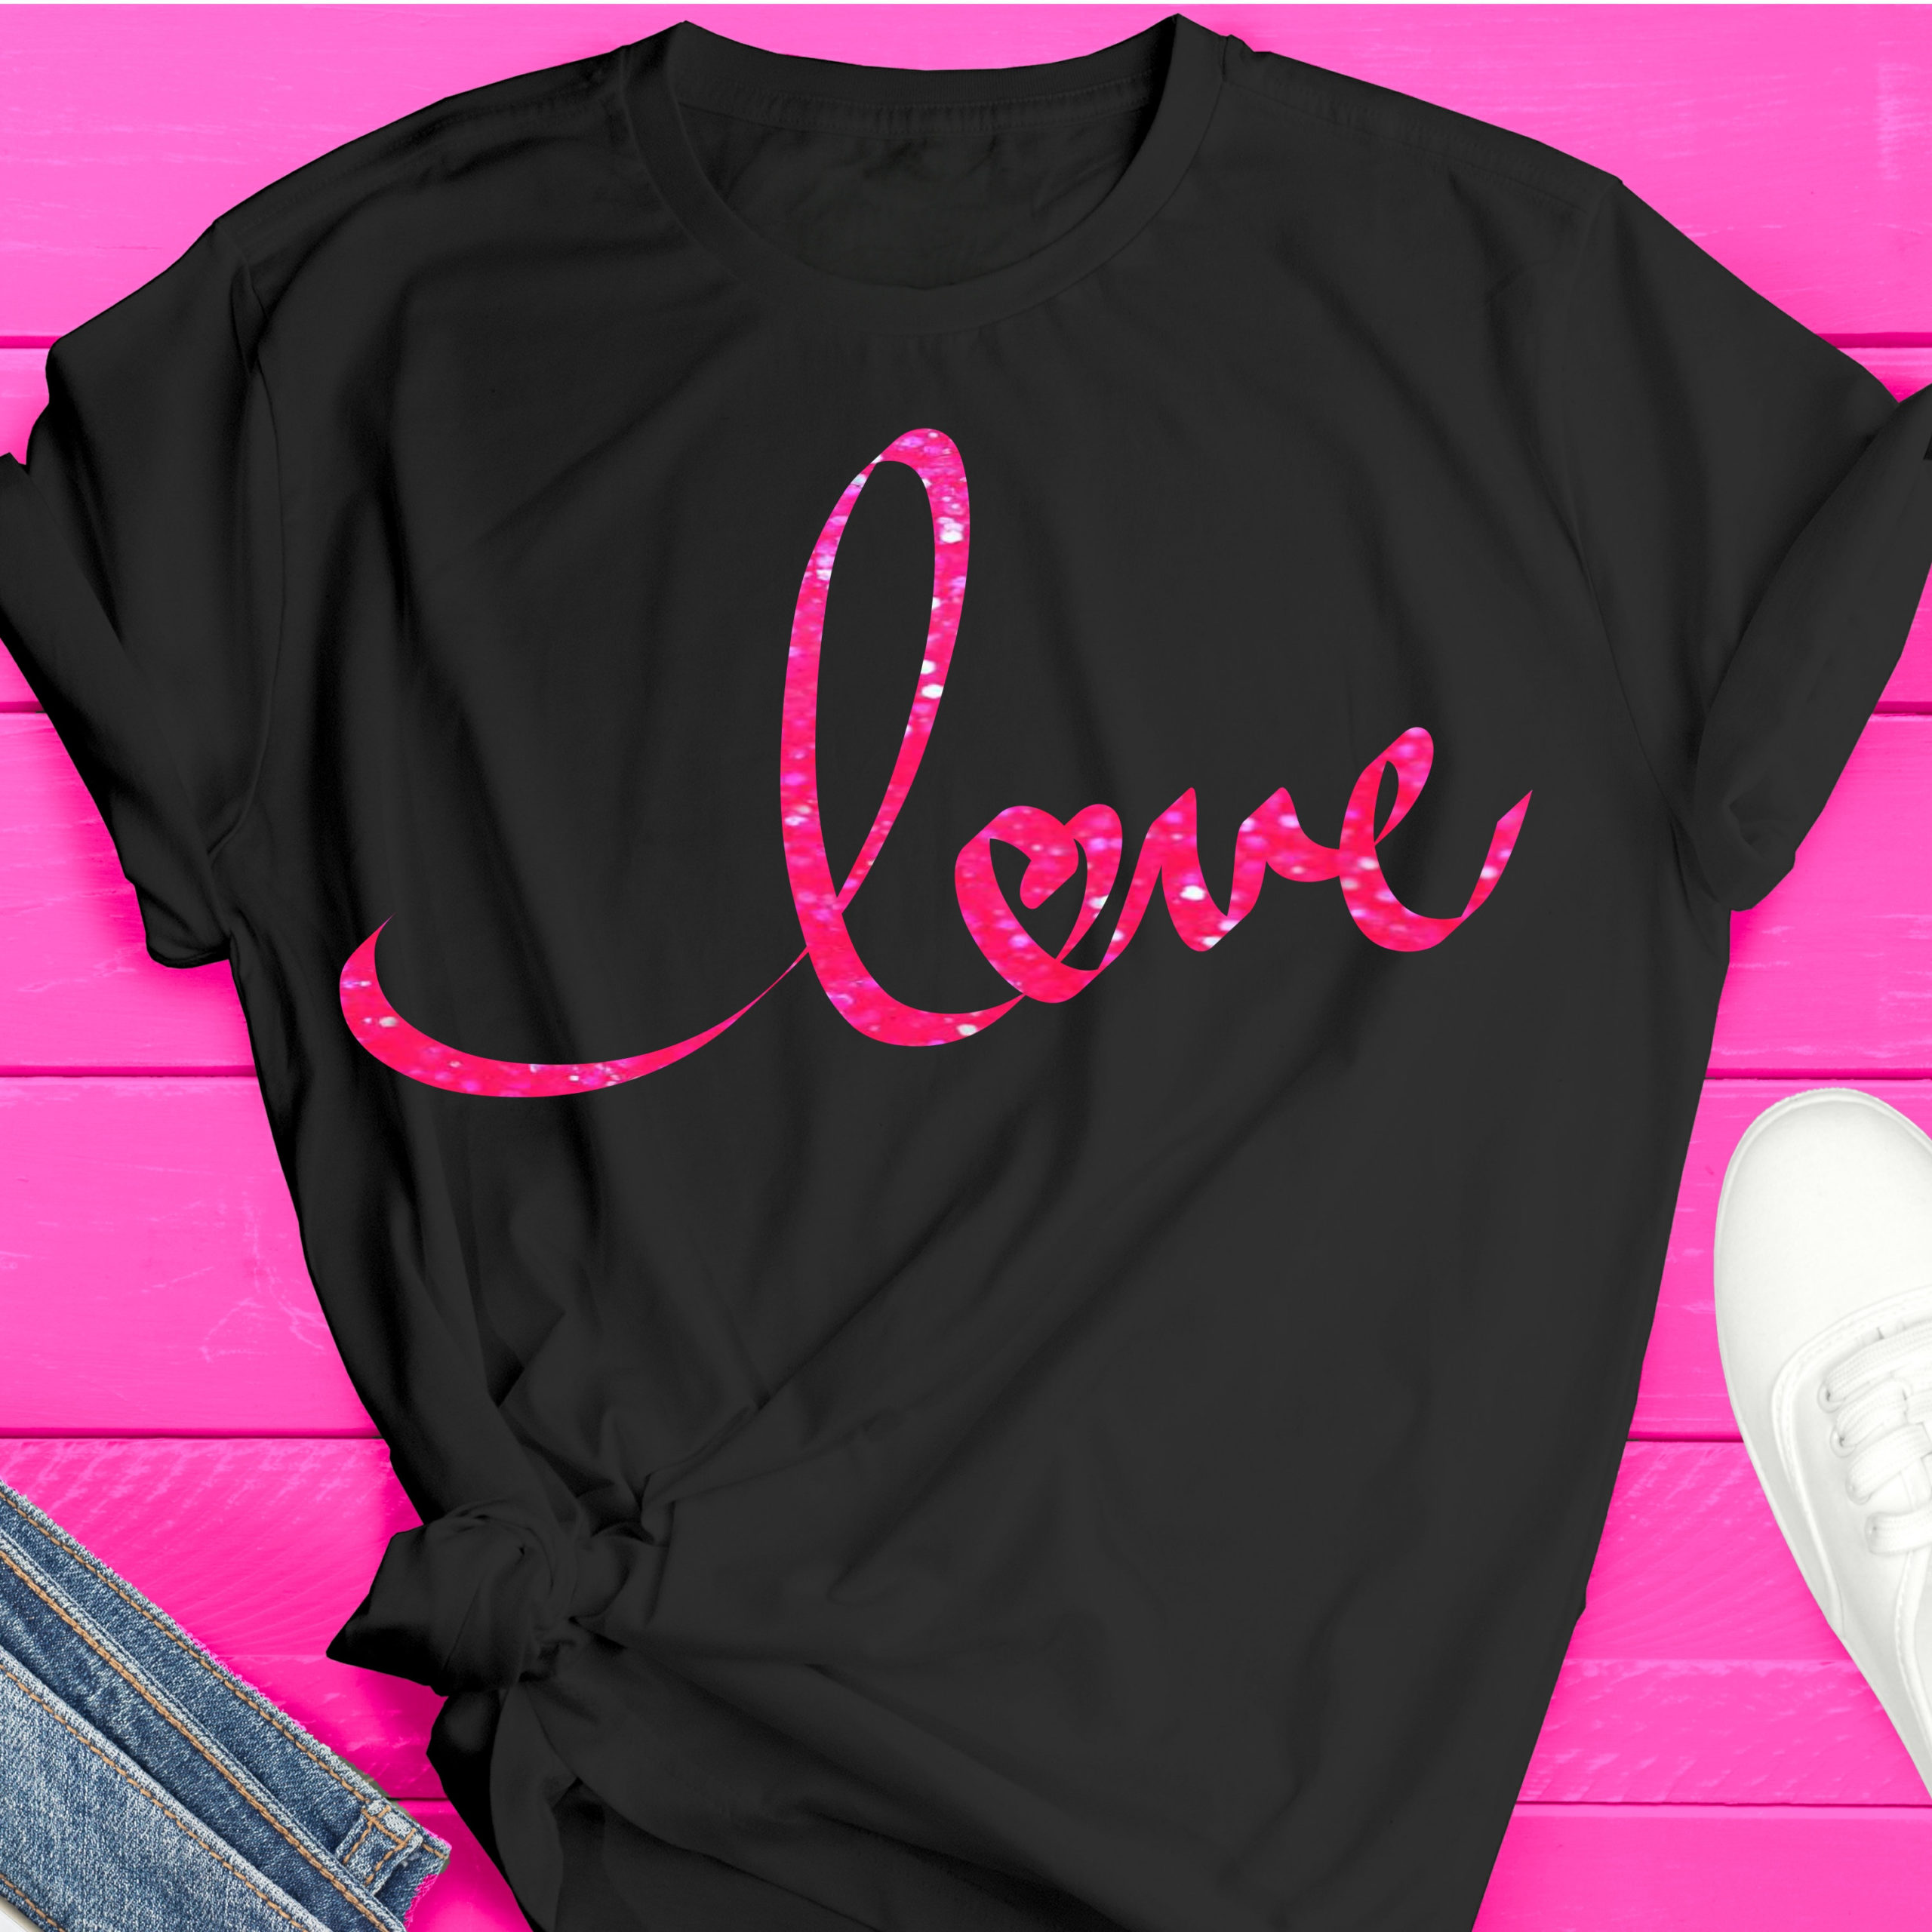 Valentines Svg for Cricut Quote Svg You are My Heart Svg Cut Files Love Svg Sayings Valentines Shirt Svg Designs Wedding Svg Silhouette Svg